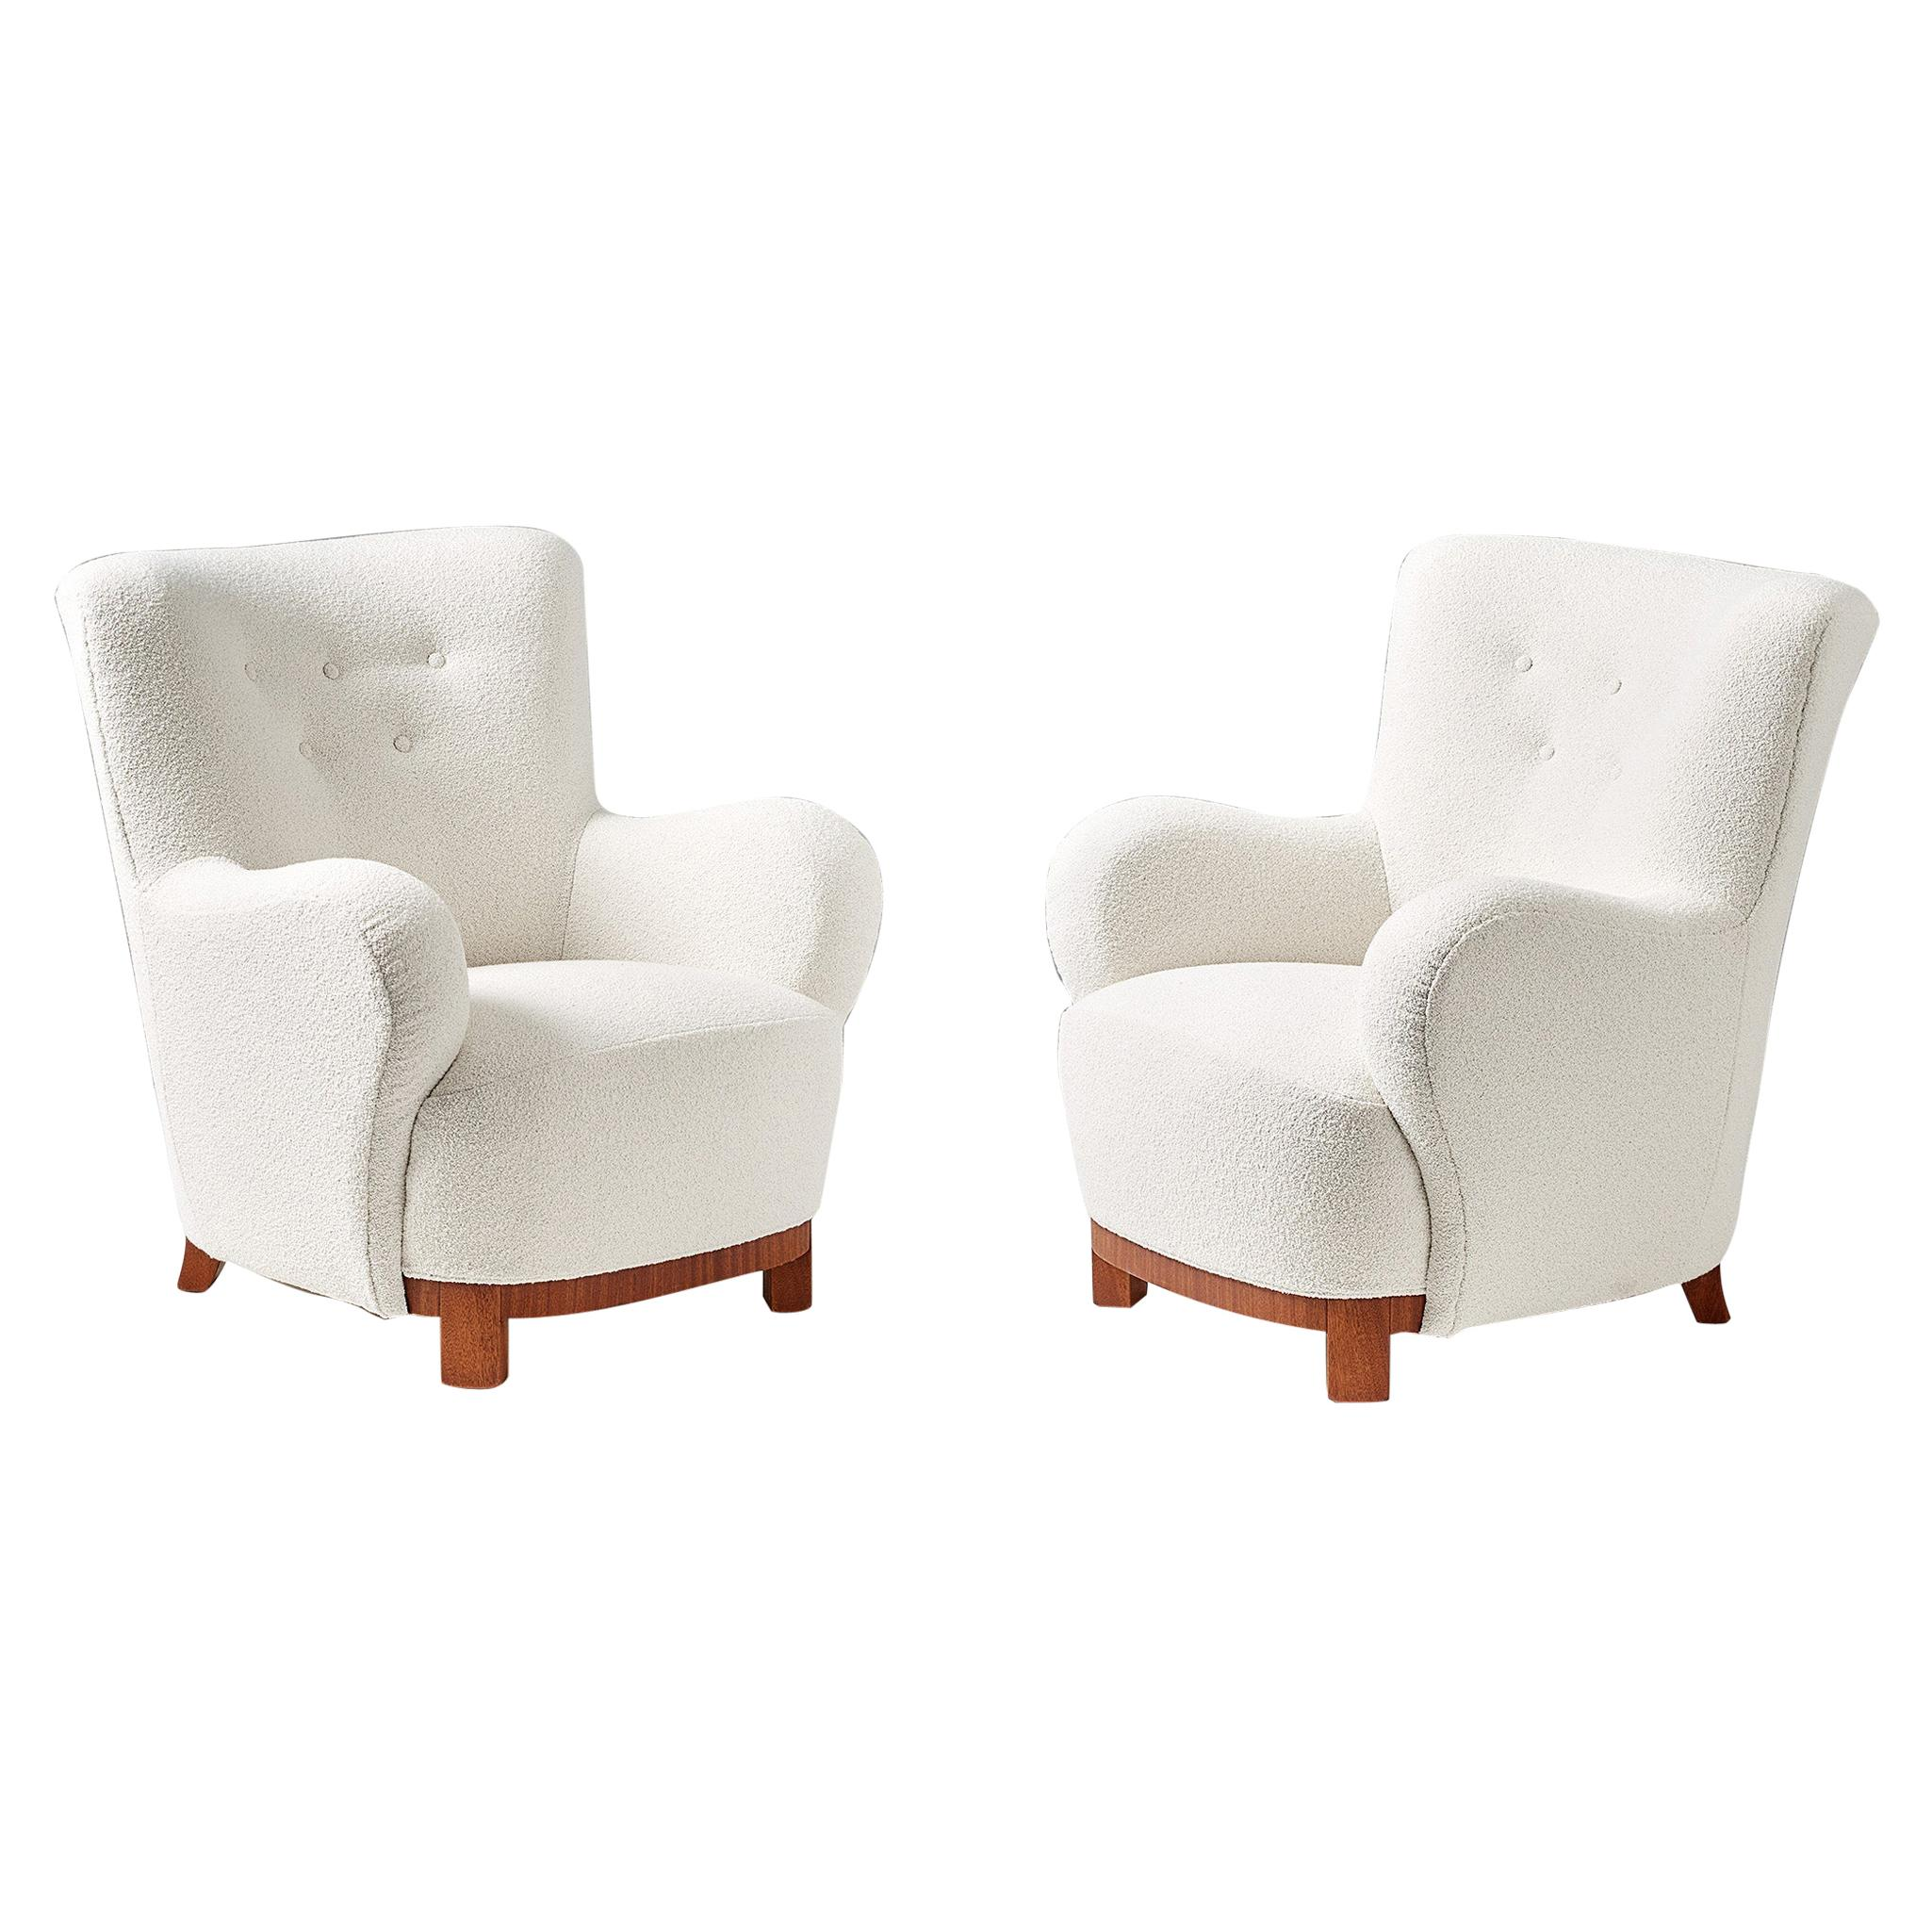 Pair of Danish Cabinetmaker 1950s Boucle Armchairs